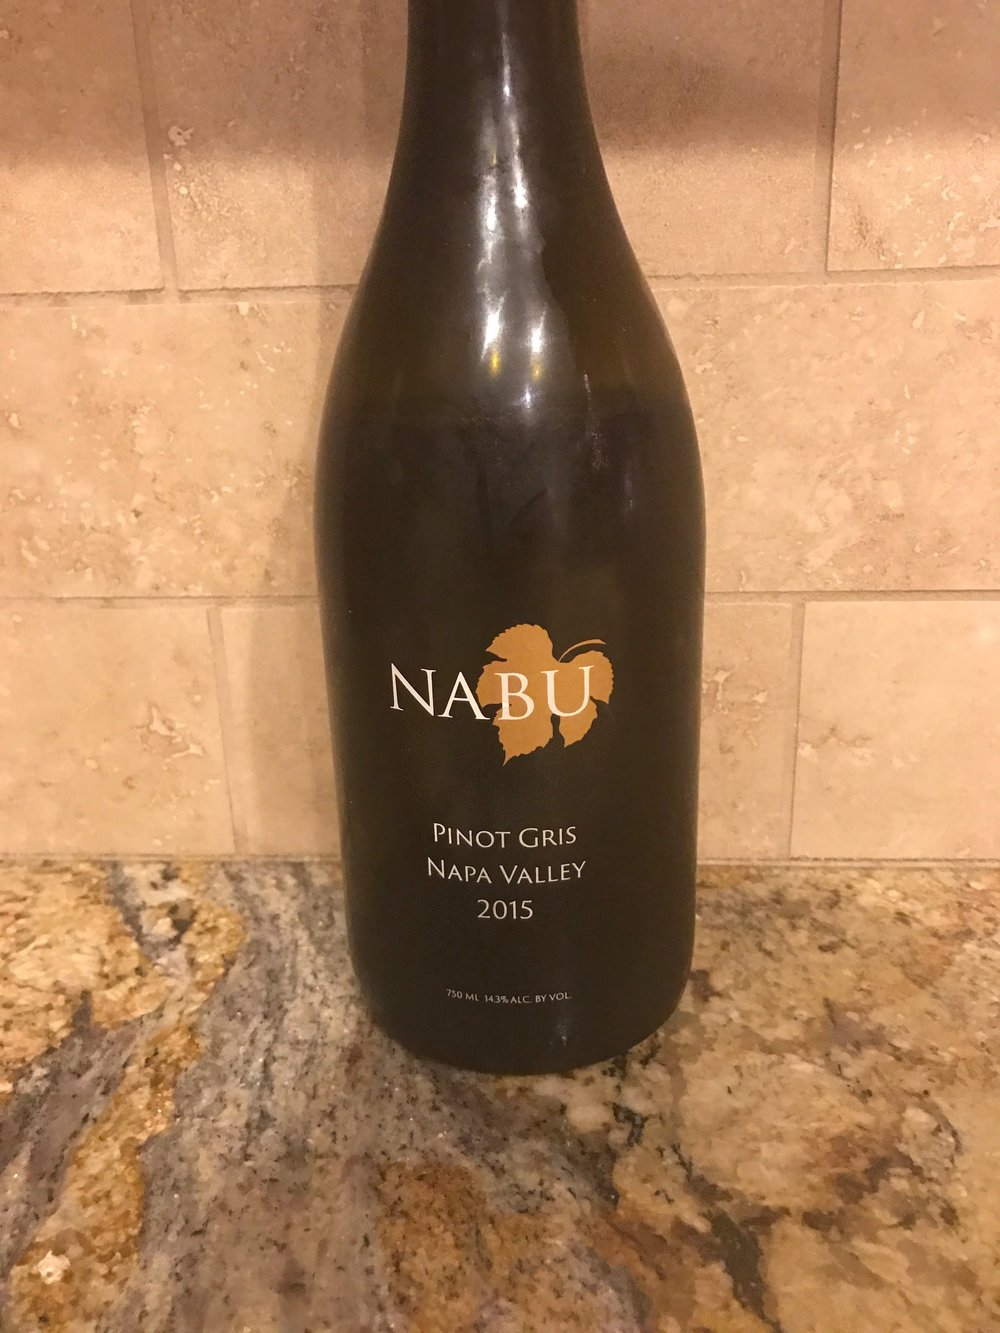 This is one of my favorite white wines, a smooth fruity sweet flavor with a very clean finish. Pairs well with chocolate chip cookies.